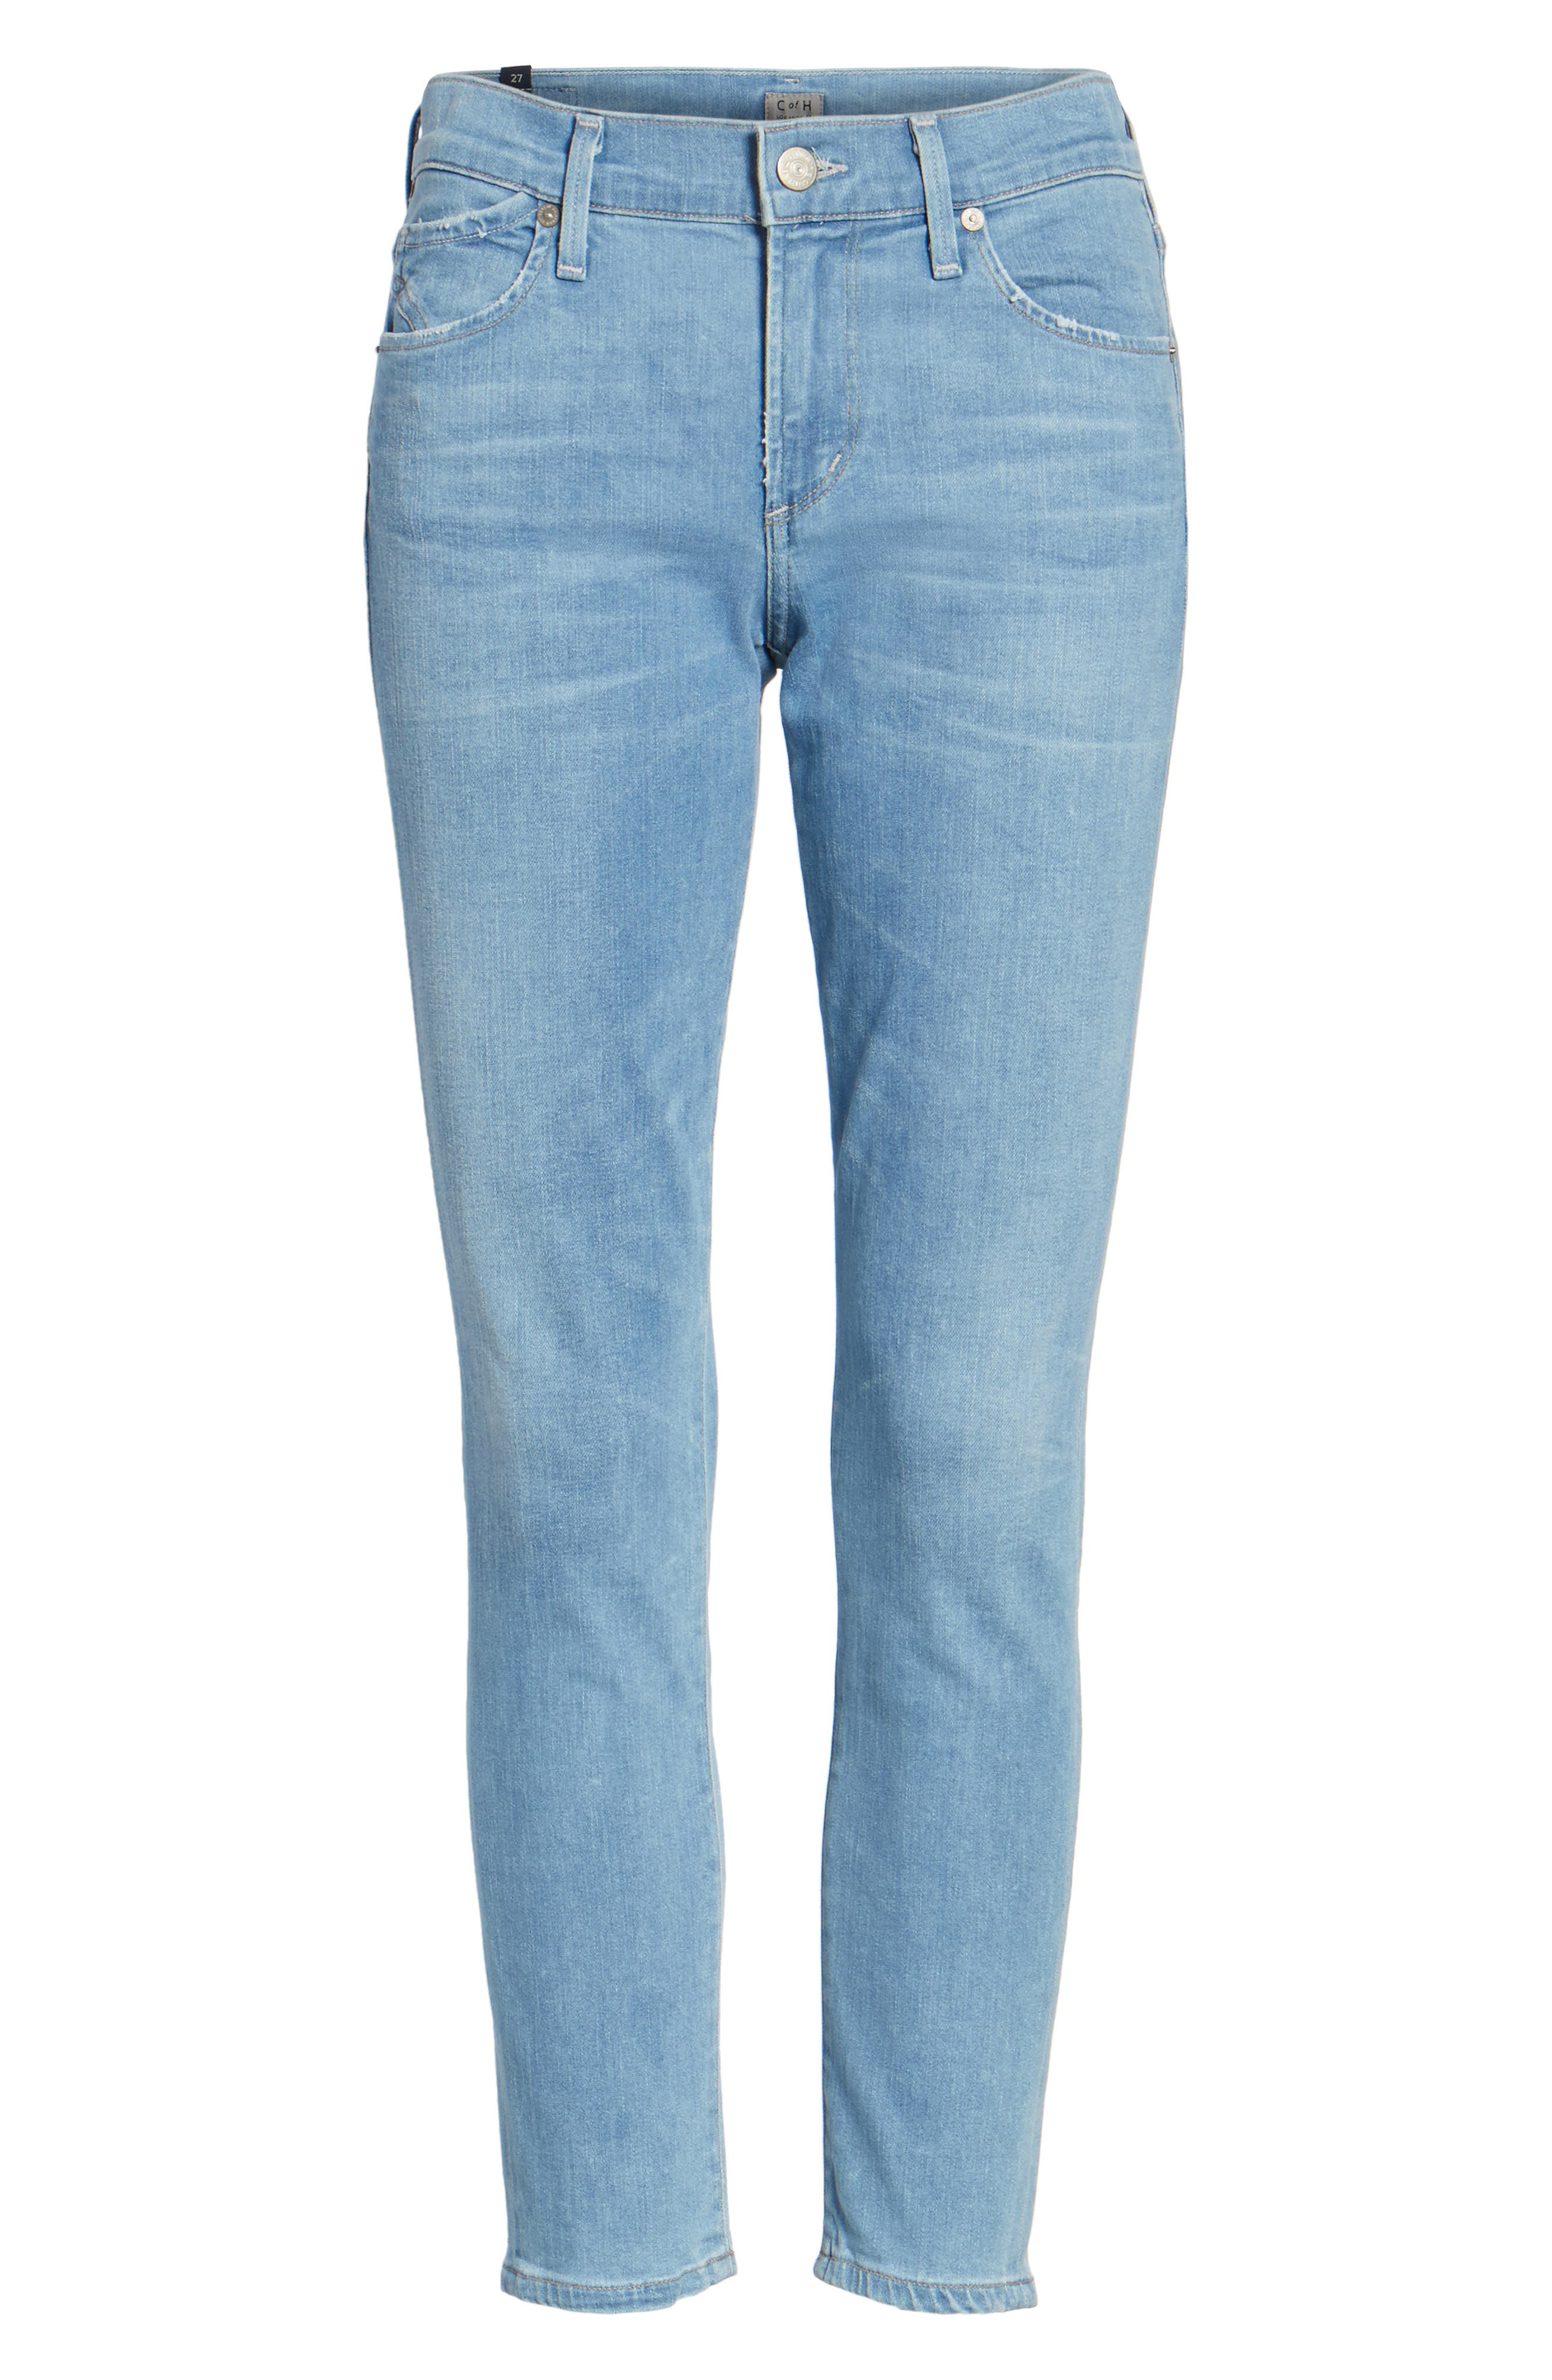 Arielle Slim Jeans,                             Alternate thumbnail 6, color,